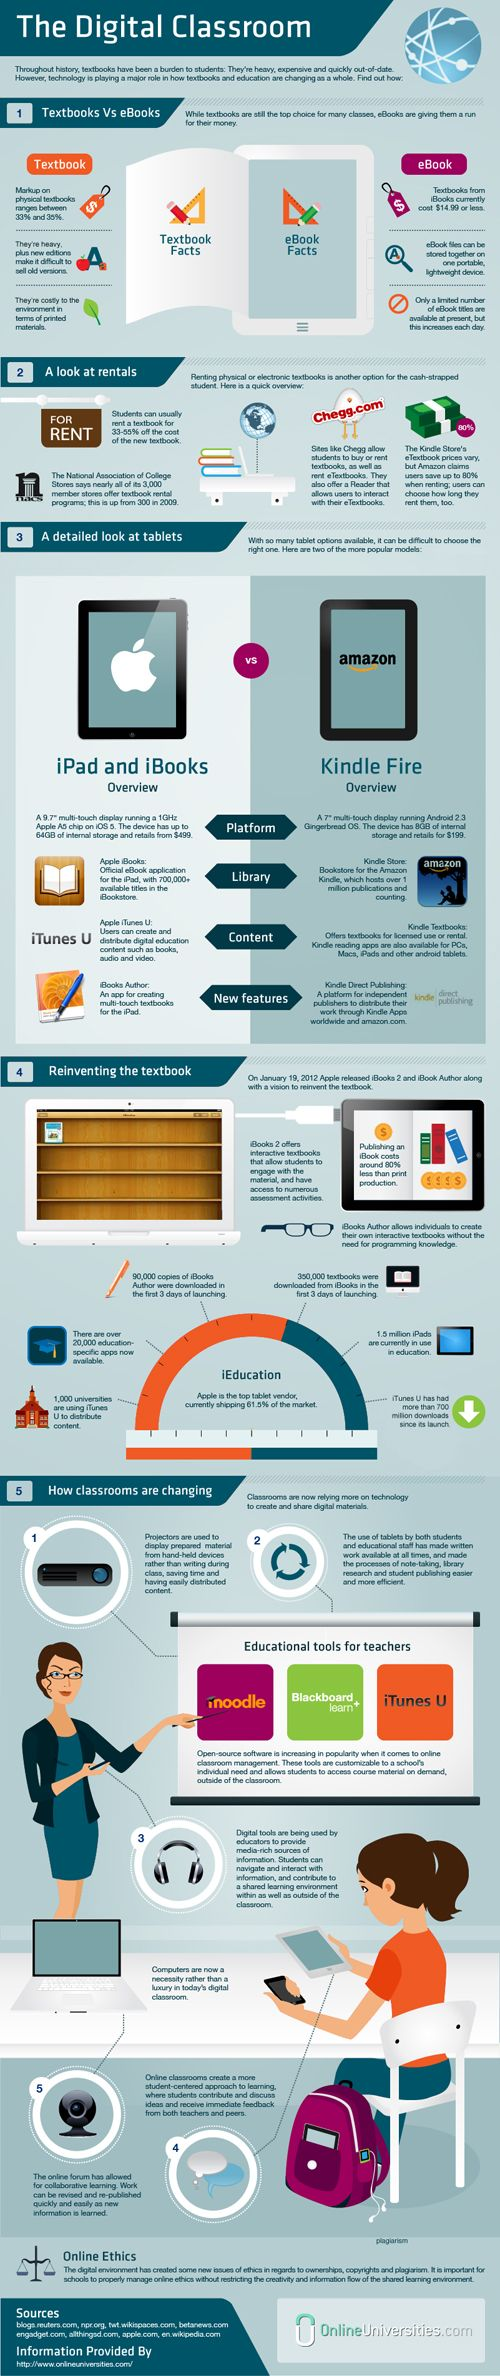 """The Digital Classroom"" Infographic"